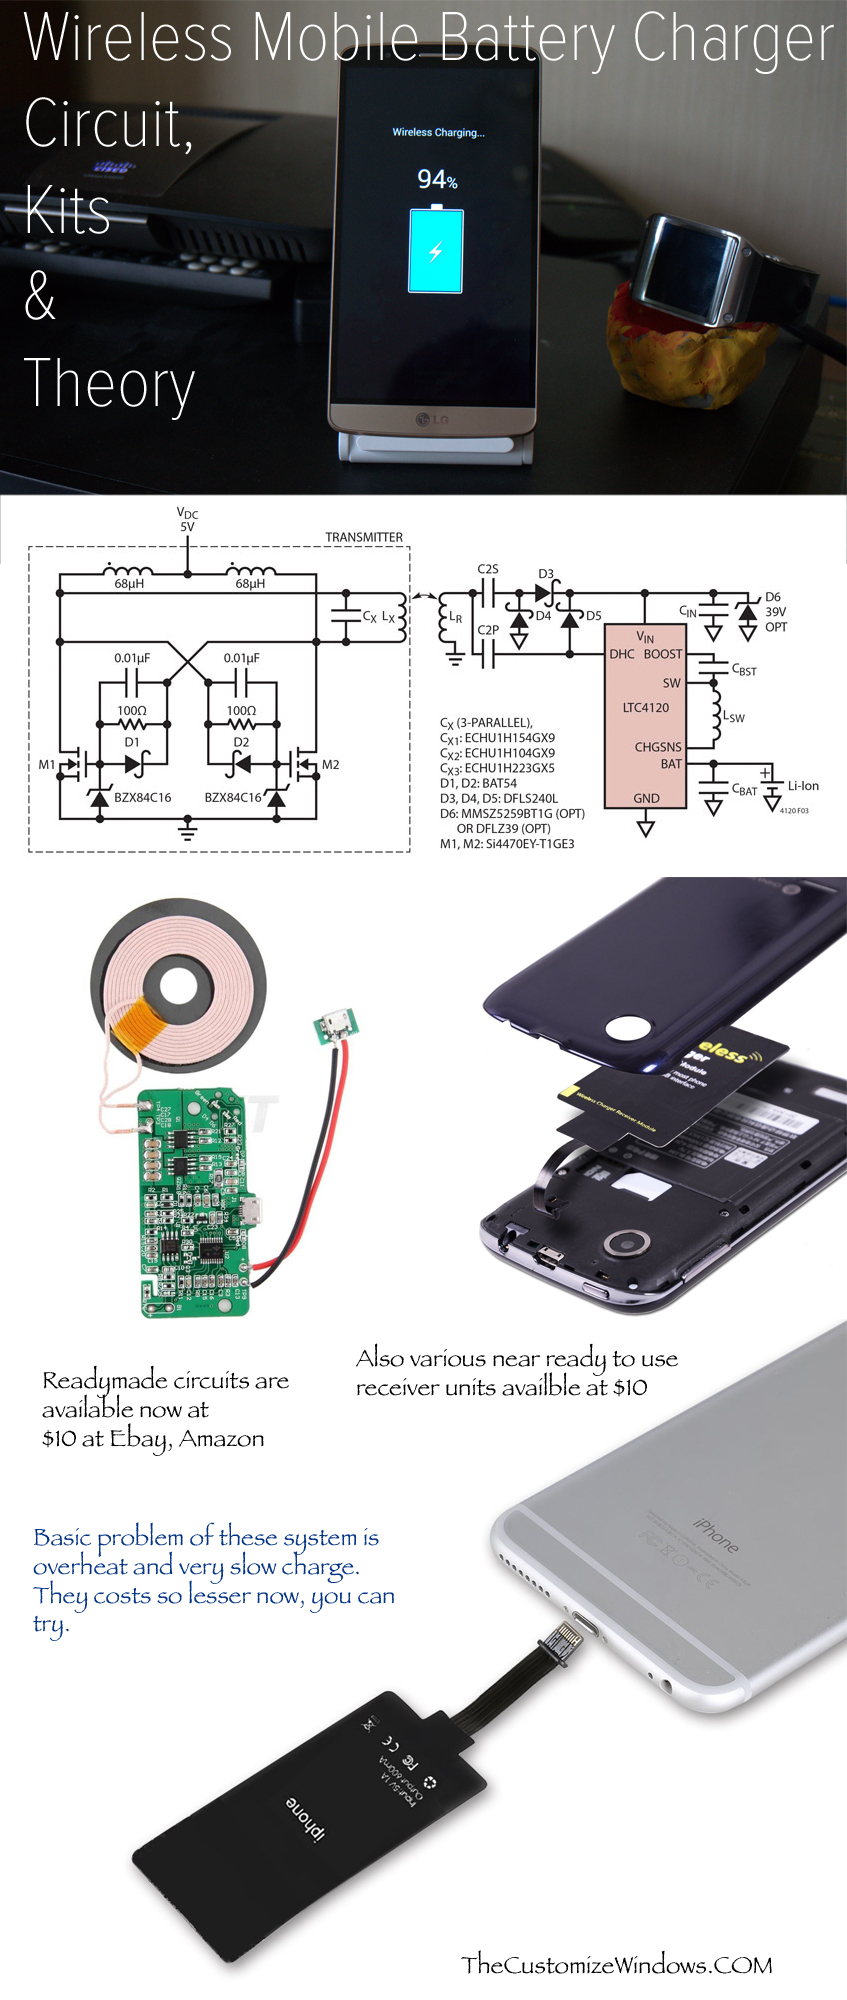 Wireless-Mobile-Battery-Charger-Circuit-Kits-Theory